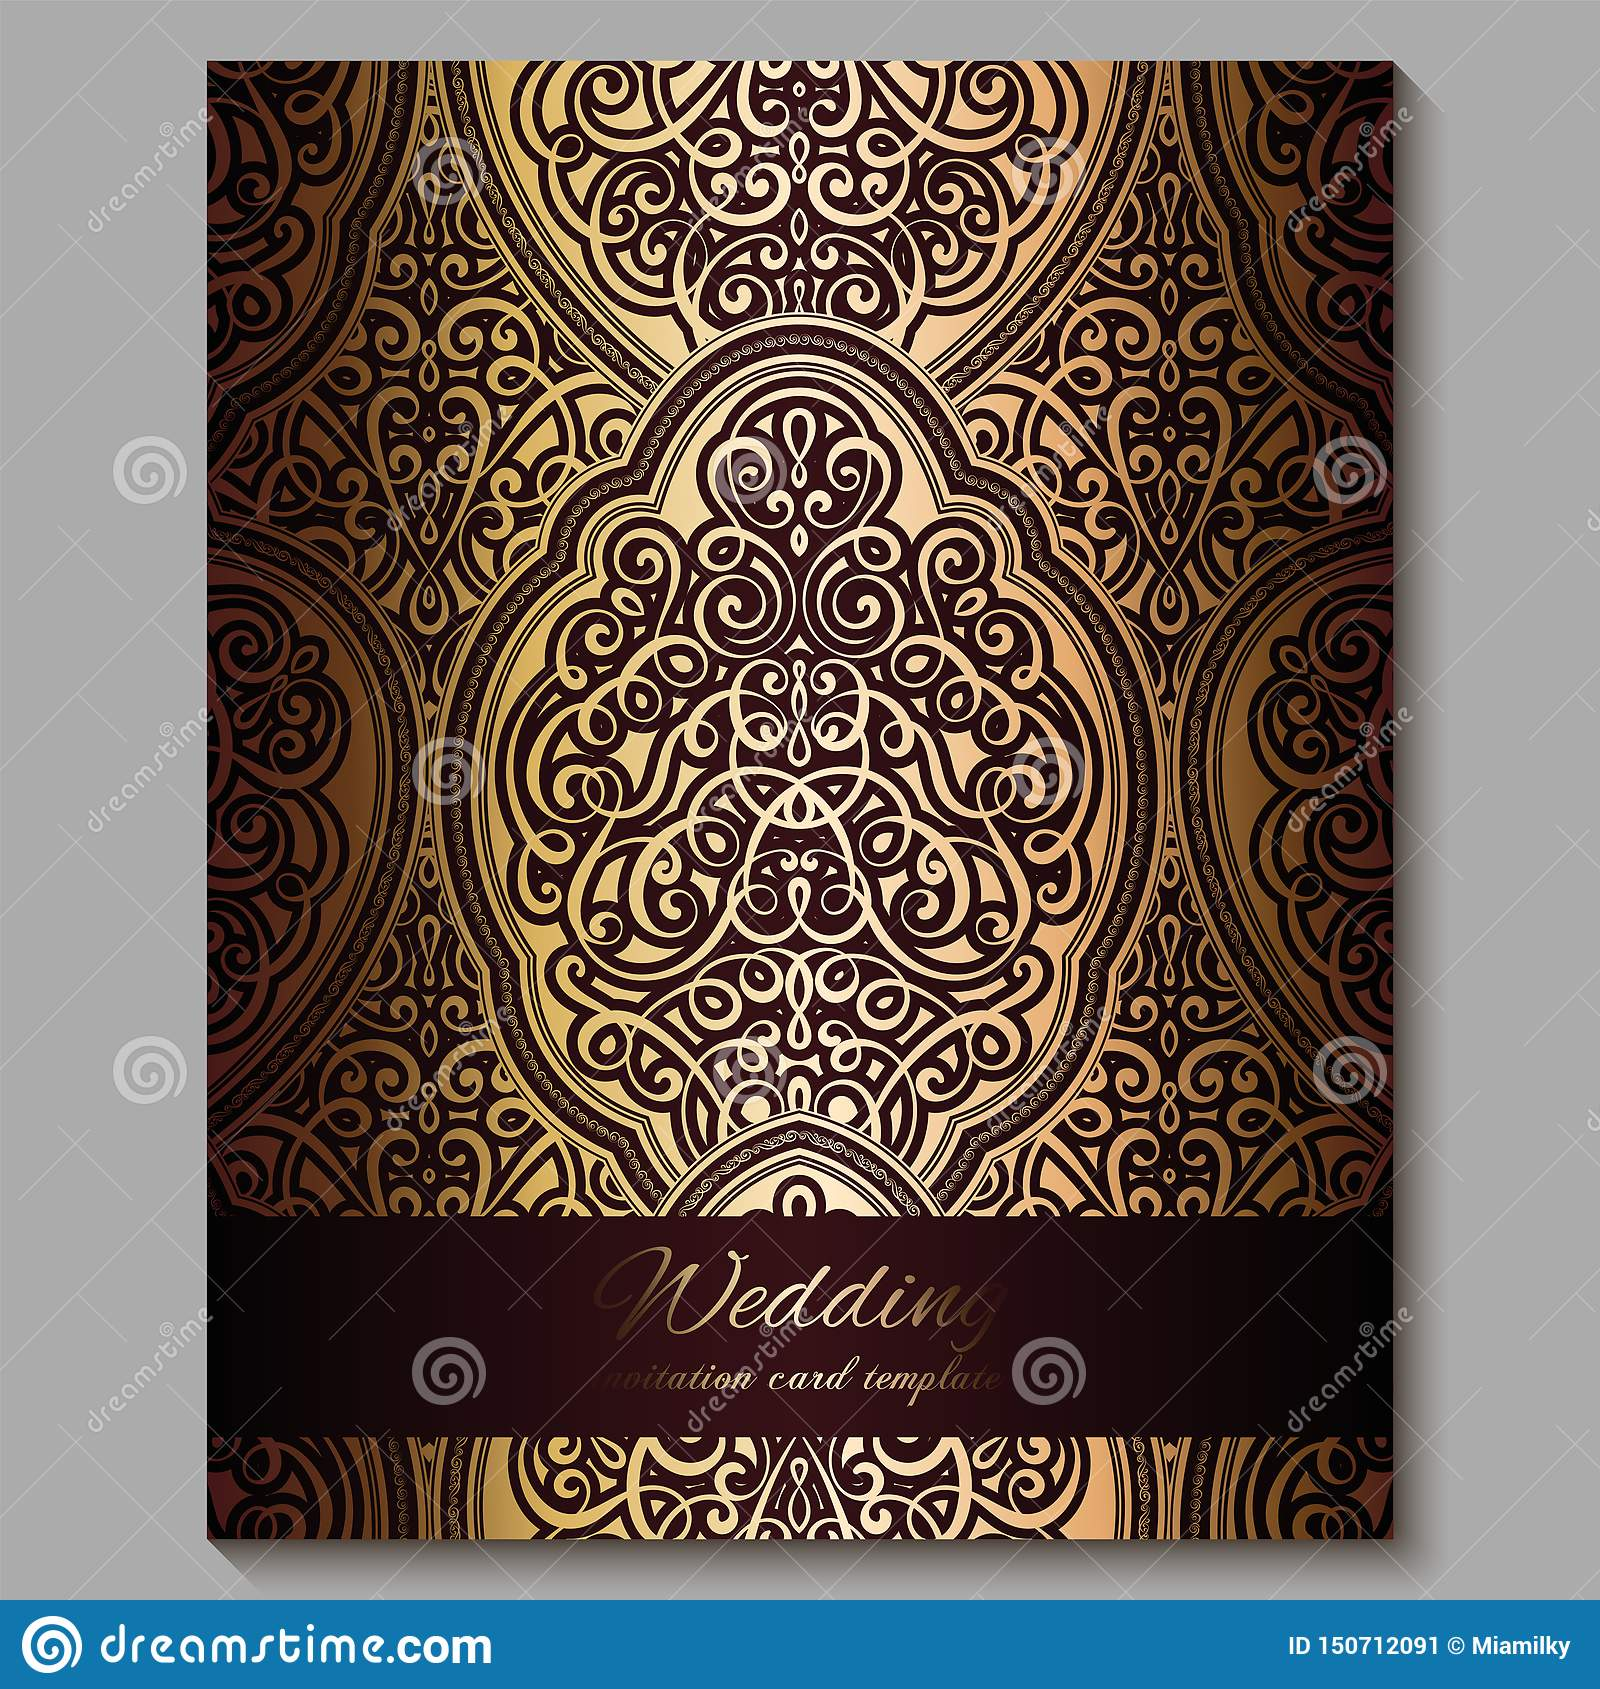 Wedding Invitation Card With Gold Shiny Eastern And Baroque Rich Foliage Royal Red Ornate Islamic Background For Your Design Stock Illustration Illustration Of Frame Antique 150712091